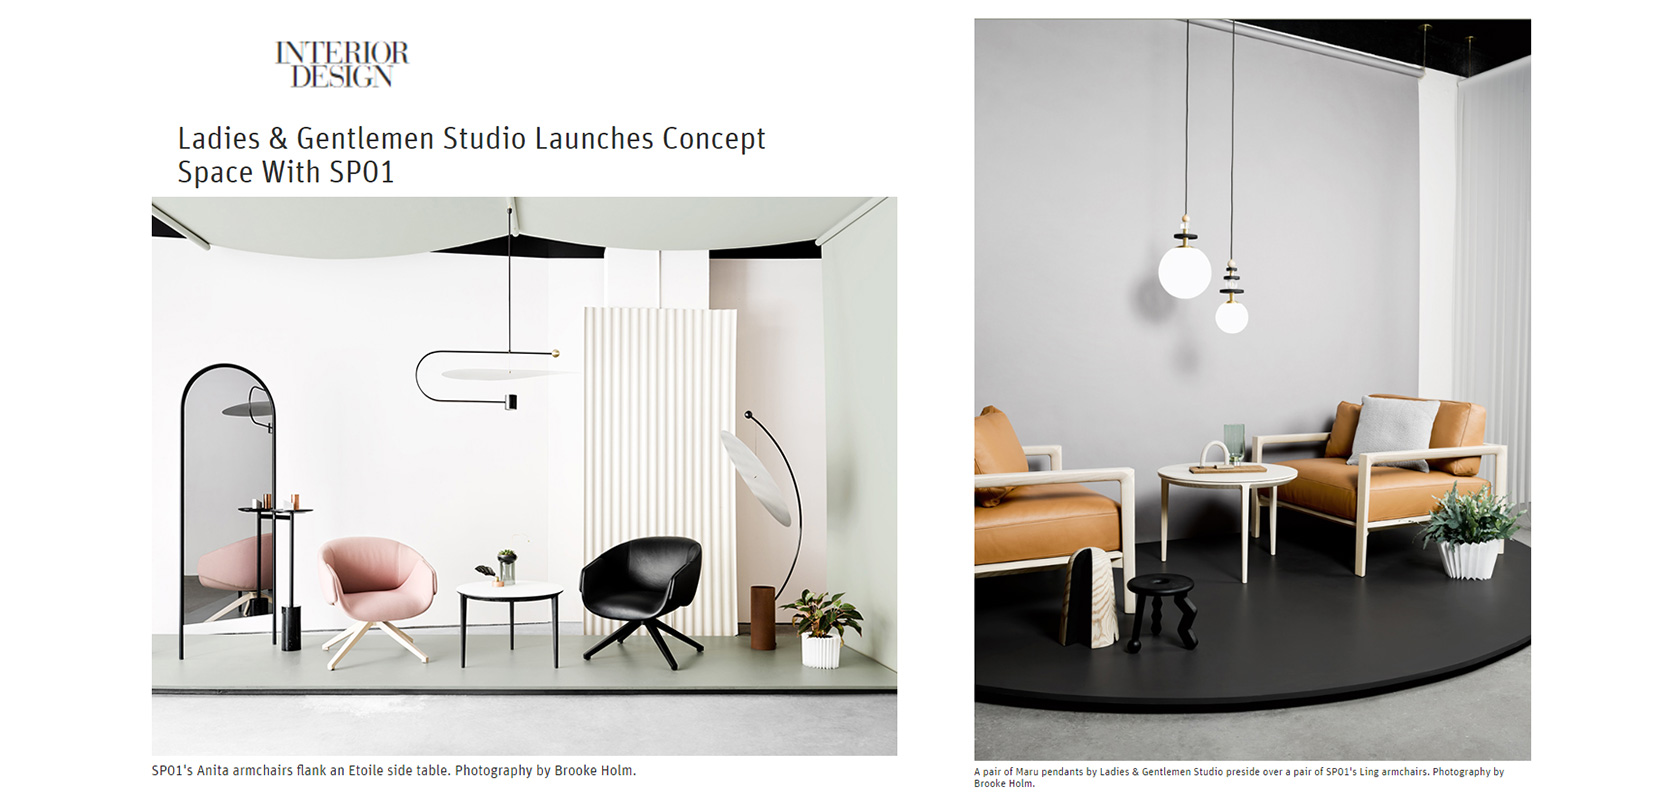 Interior Design (US), May 2017,  read the story here.